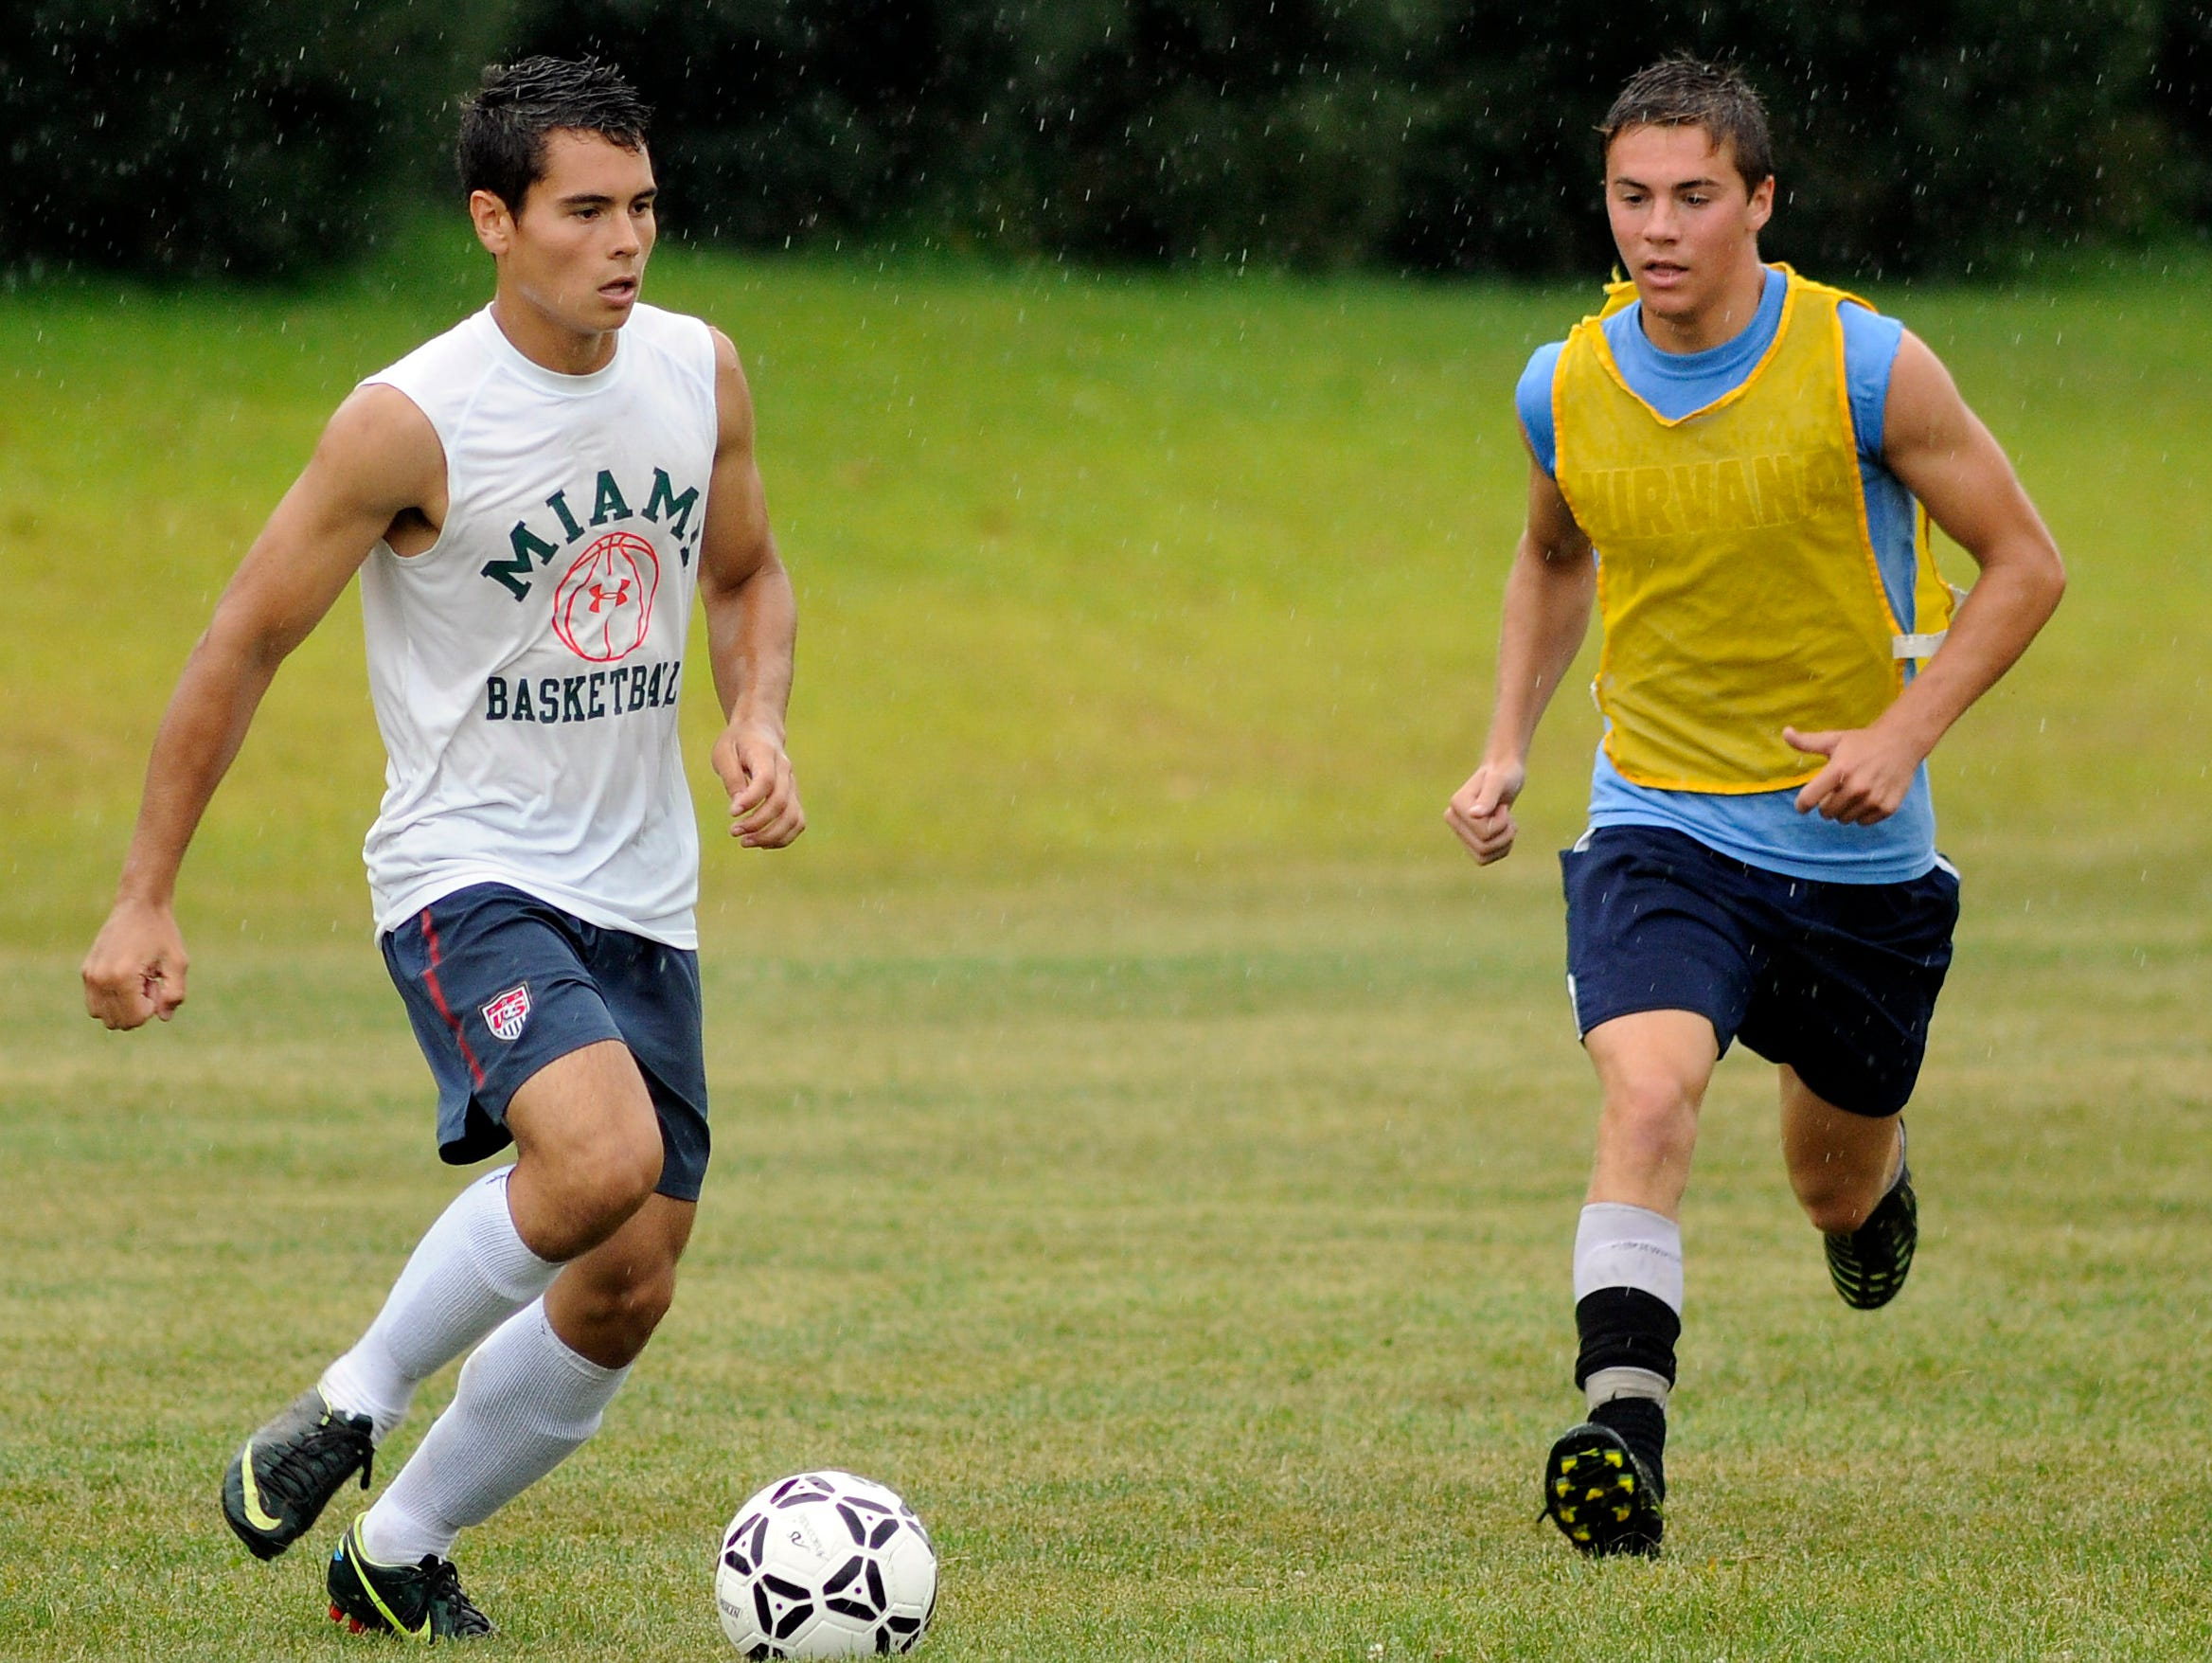 Rhinebeck High School varsity boys soccer players Eric Rodriguez, left, and Renny Graziano practice on Thursday in Rhinebeck.